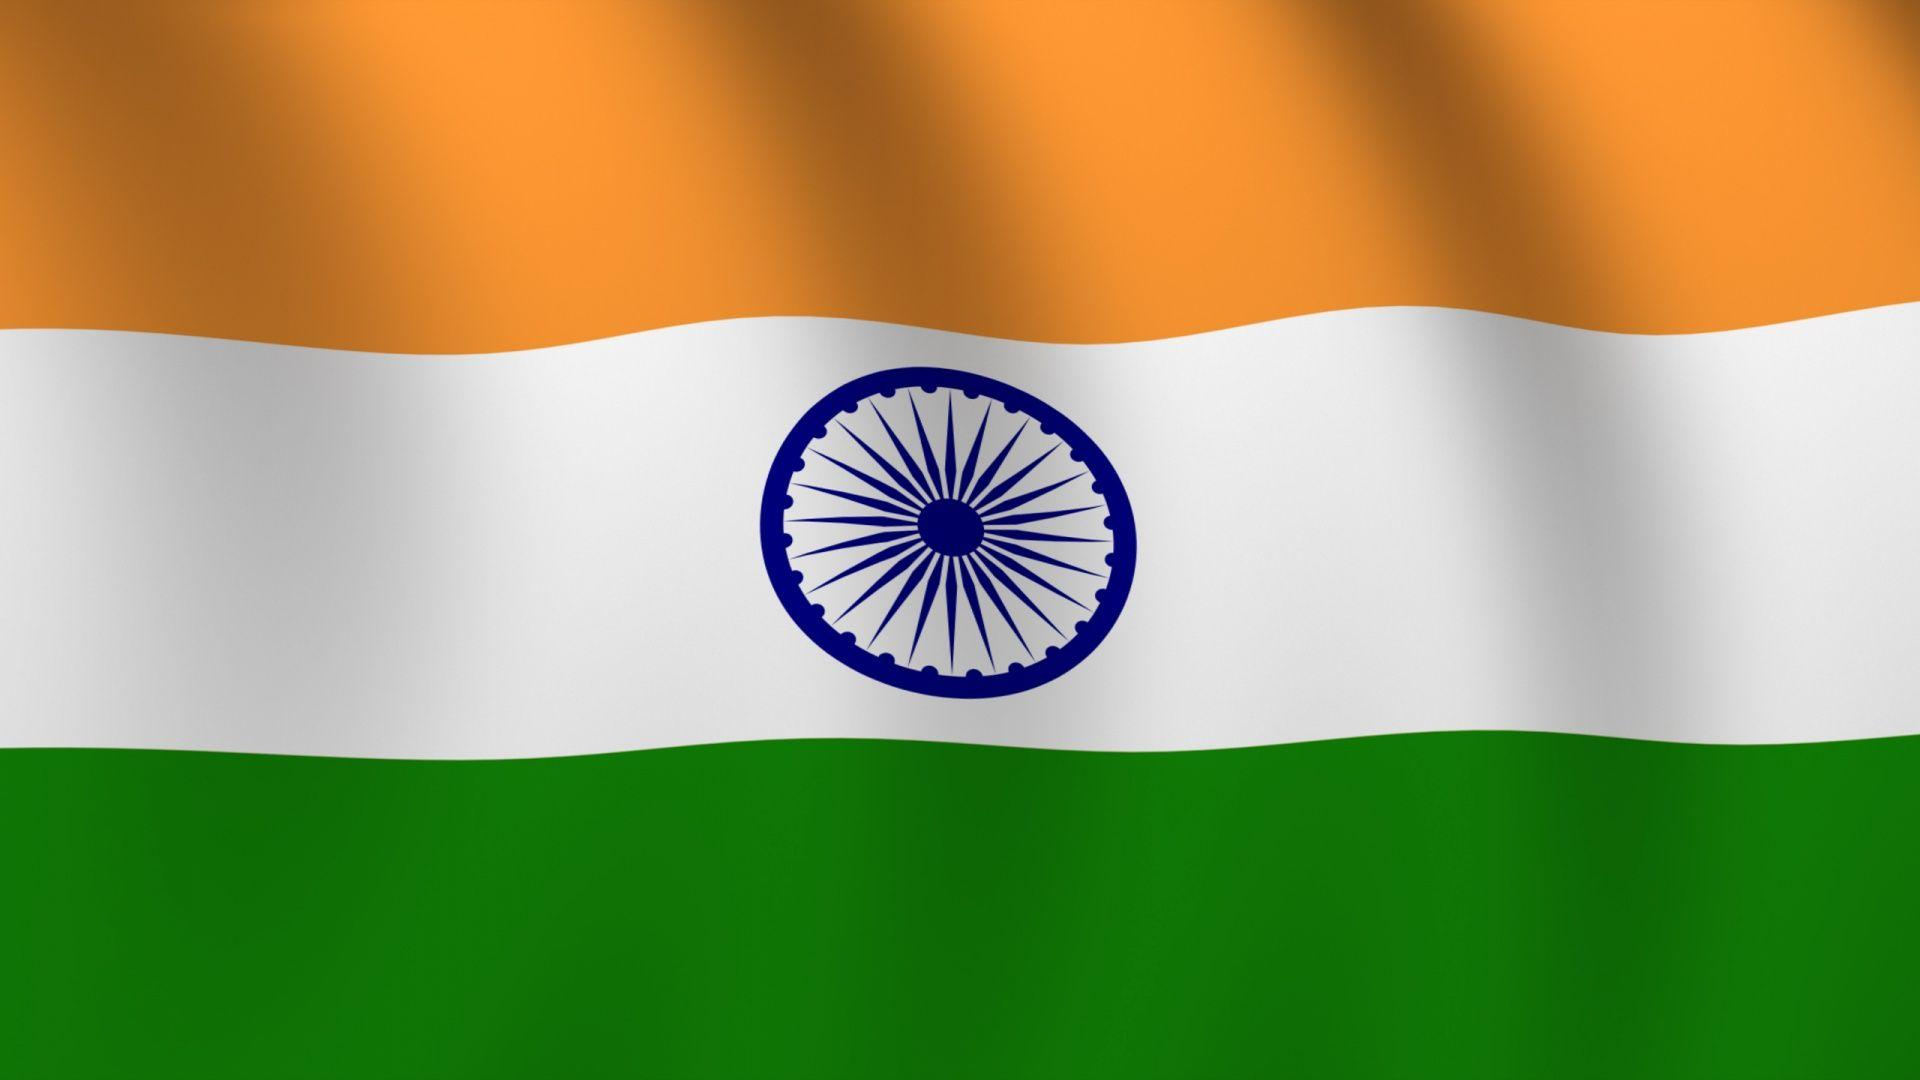 Indian Flag Mobile Wallpapers 2015 - Wallpaper Cave